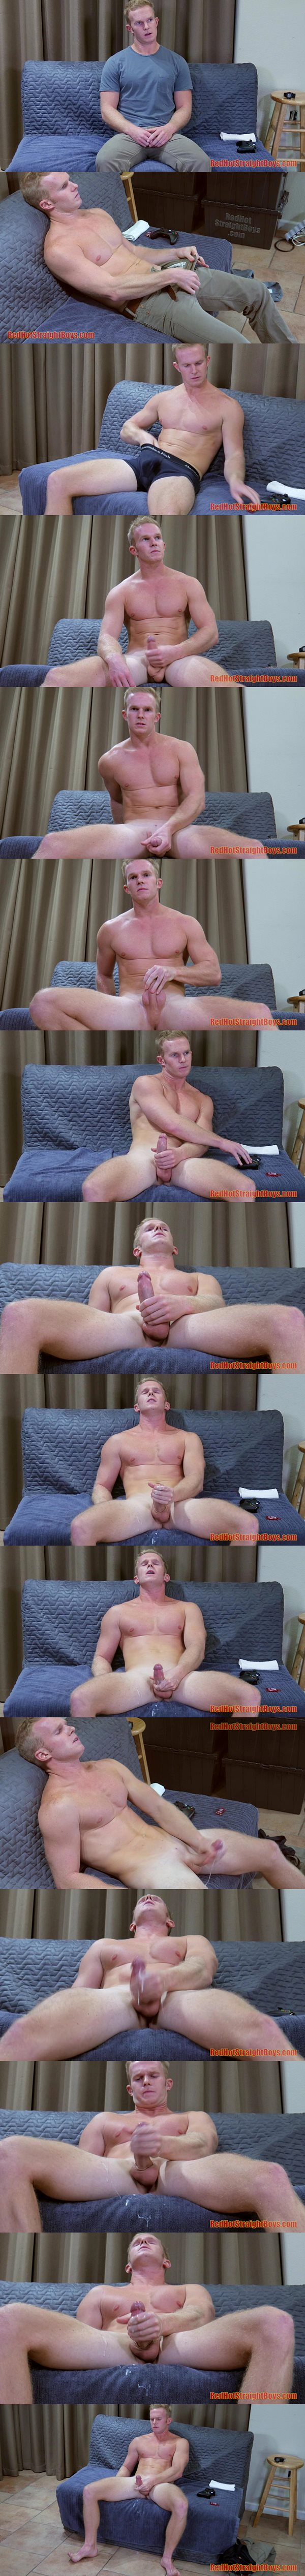 Muscular straight boy Kurt Dorn jerk off at Redhotstraightboys